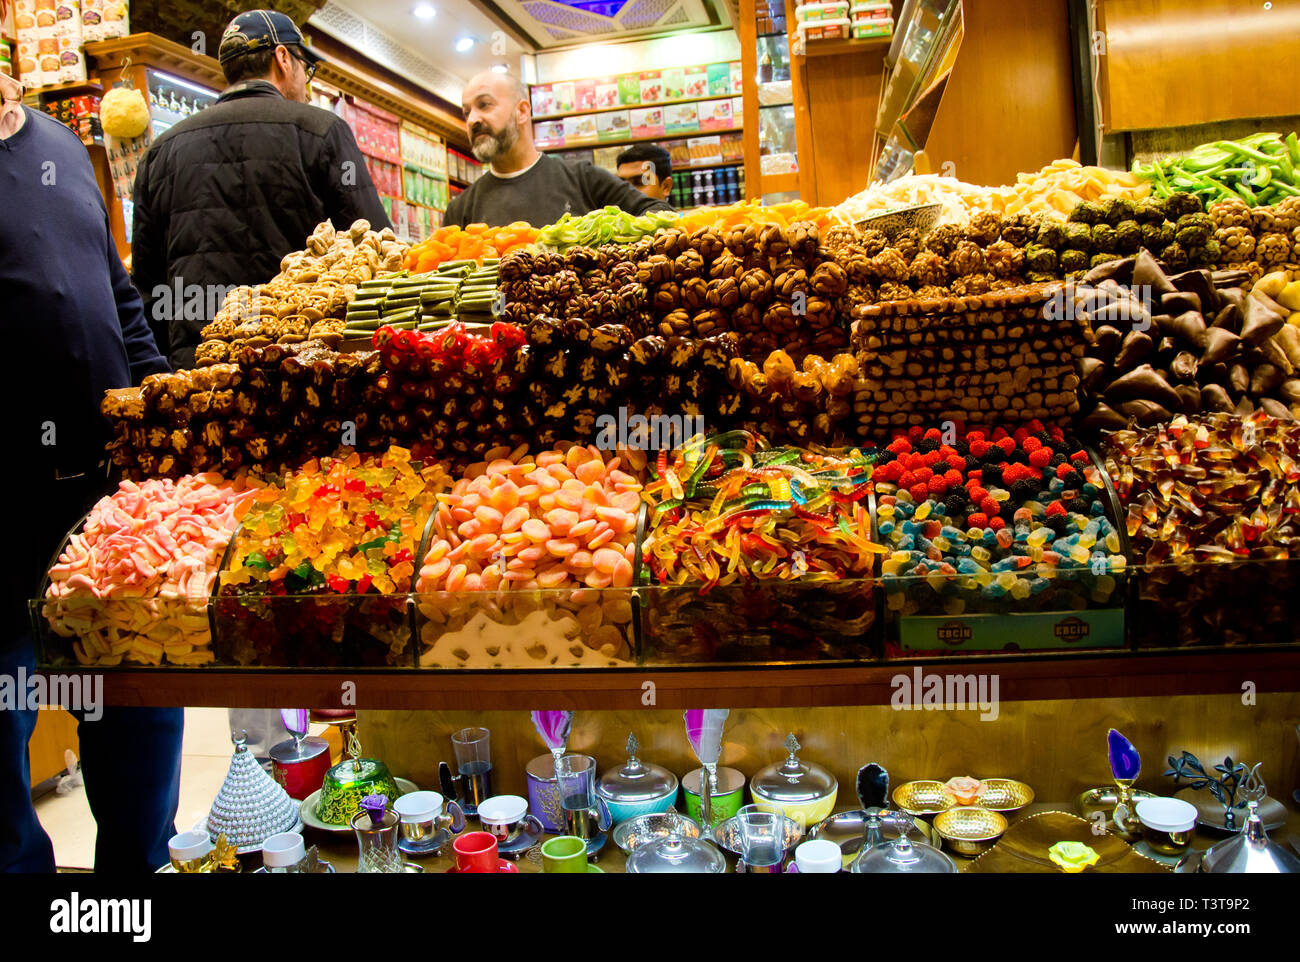 Istanbul,Turkey,March 07, 2019:inside of Egyptian Bazaar n front of store selling various colorful sweets, close up, with some customers inside - Stock Image